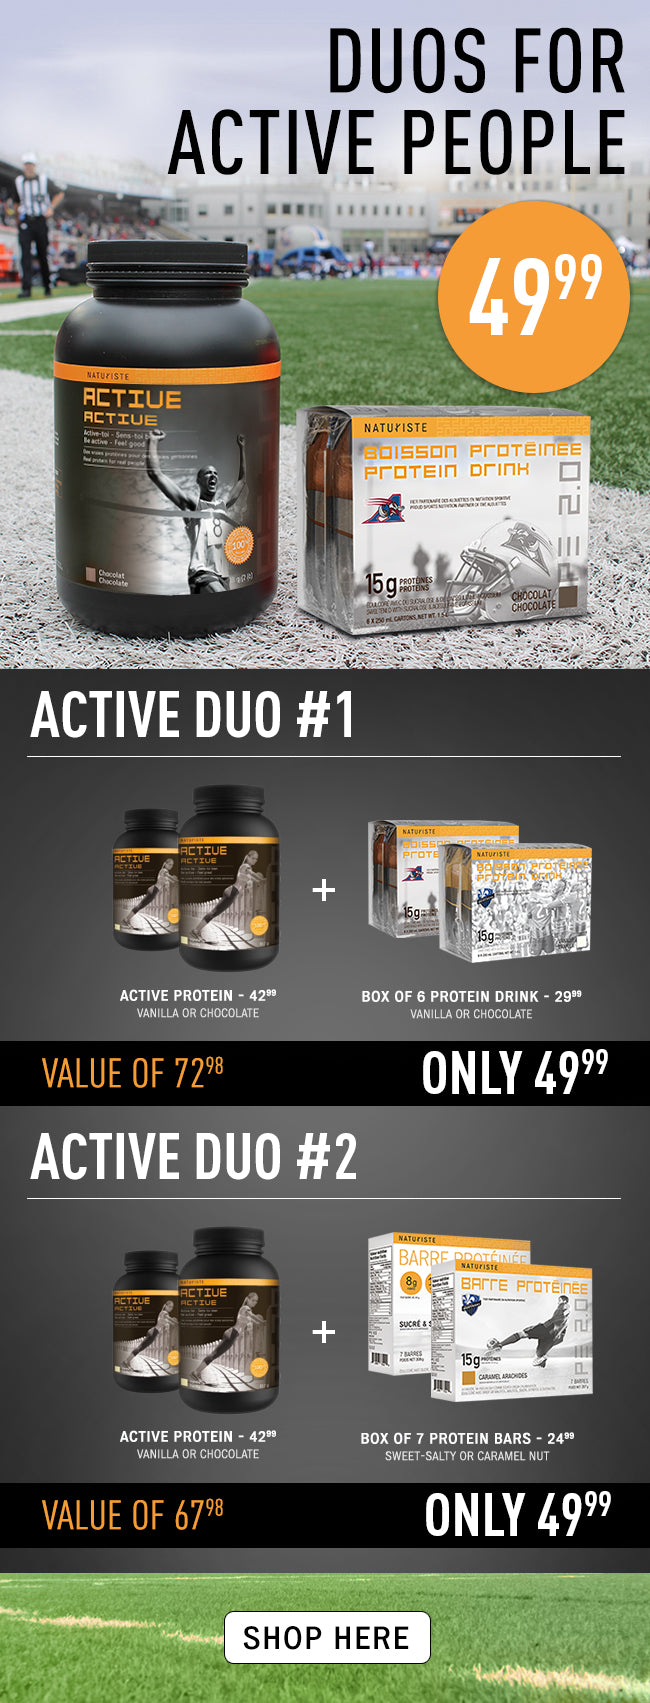 image-newsletter-active-duo